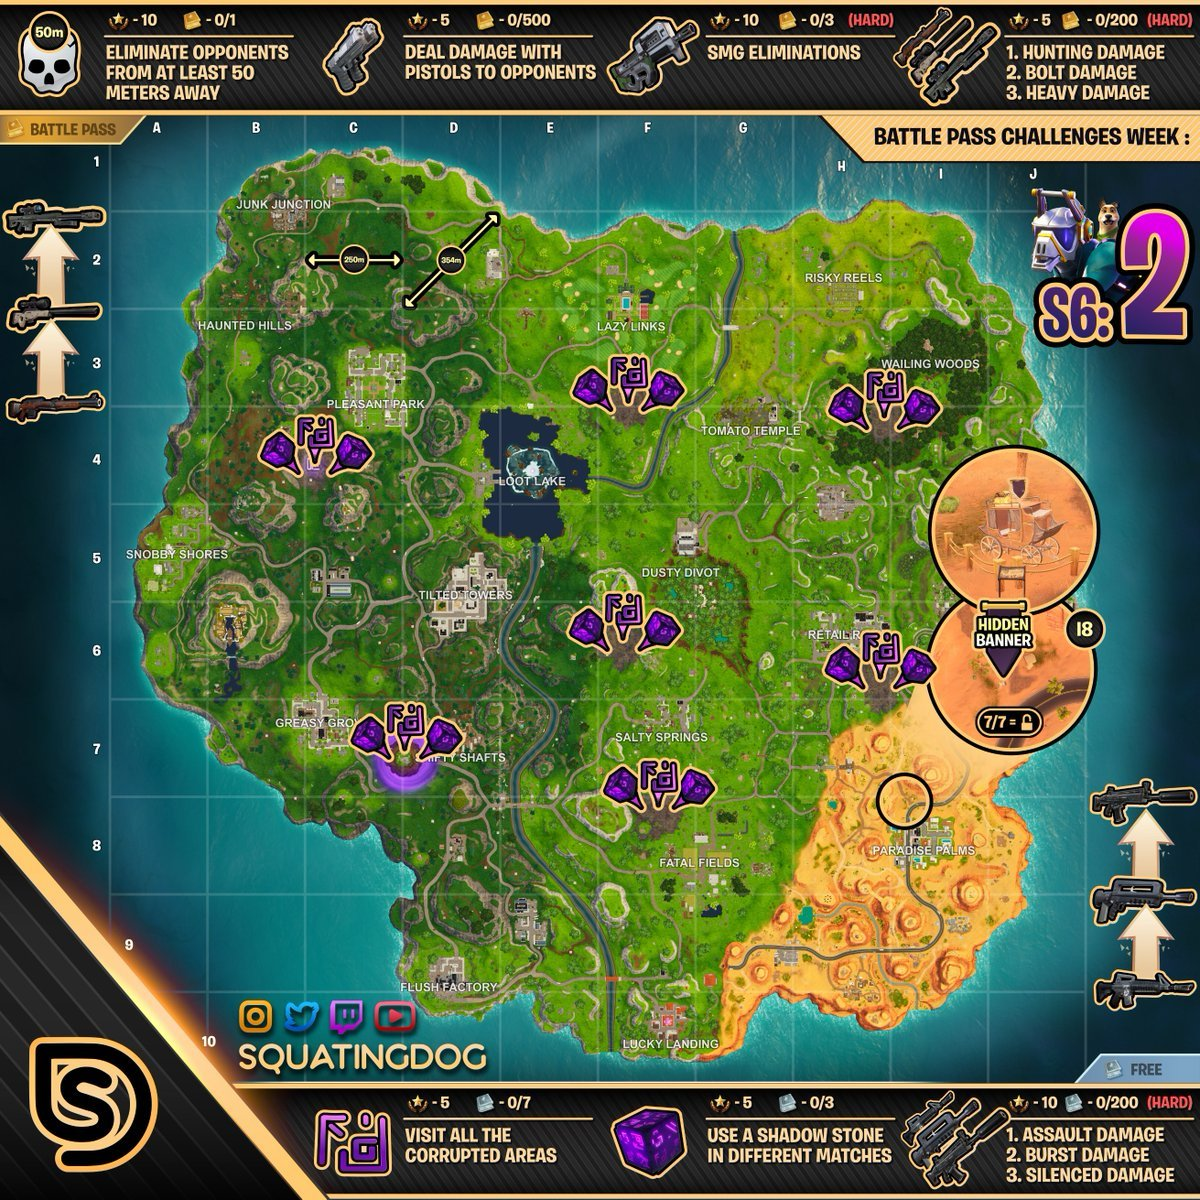 Cheat sheet fortnite season 6 week 2 challenges